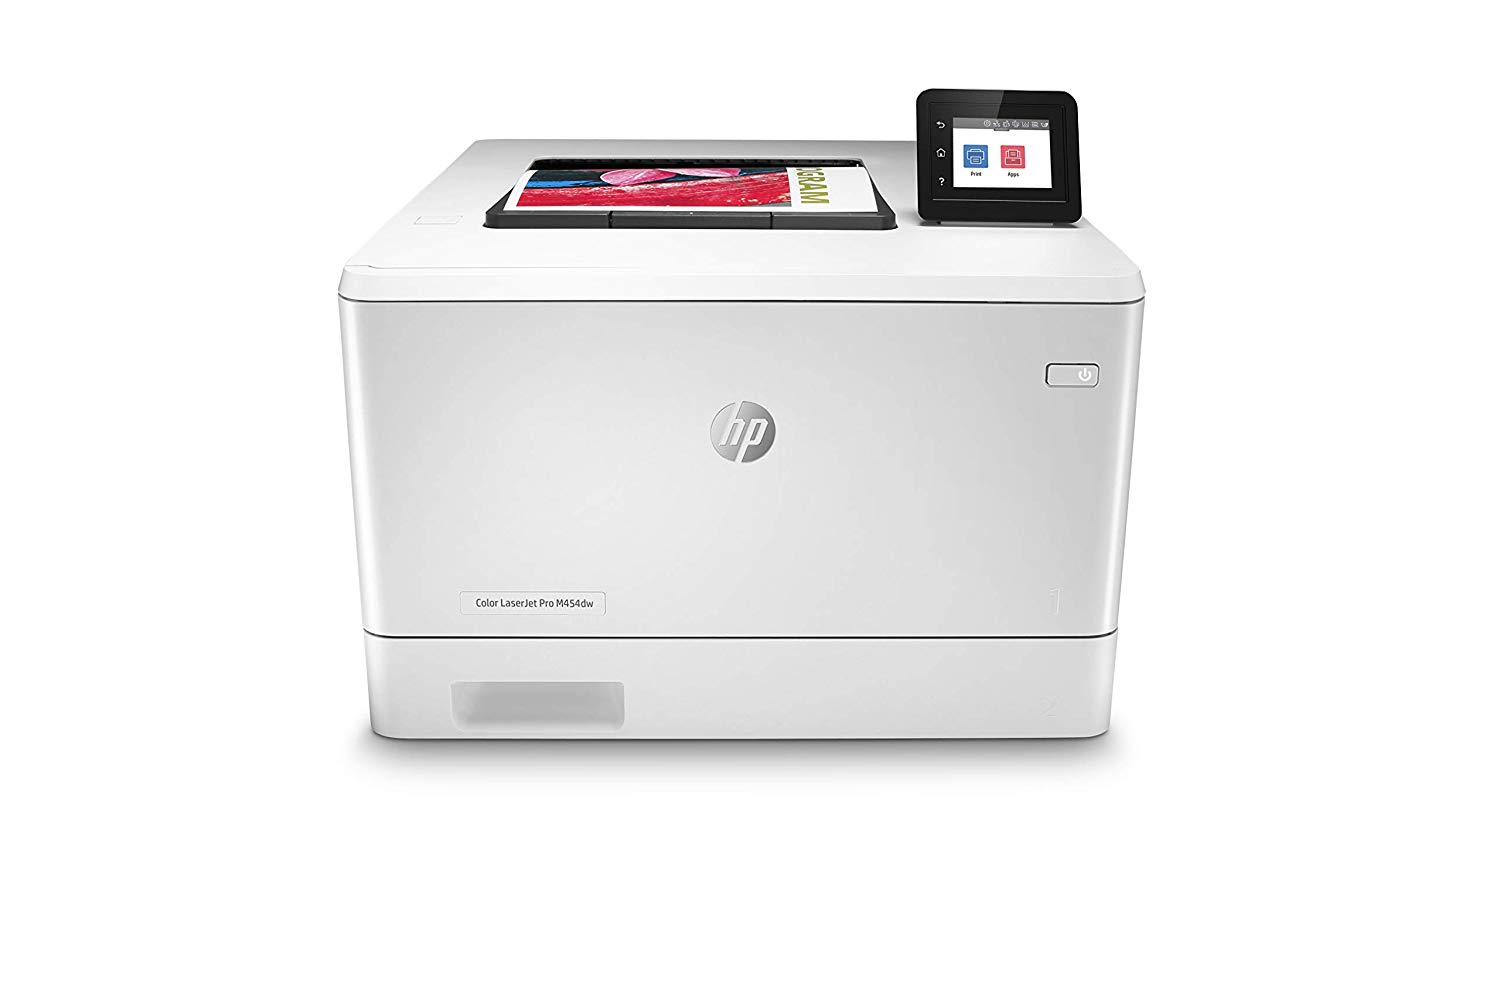 HP Color LaserJet Pro M454dw Printer (W1Y45A)